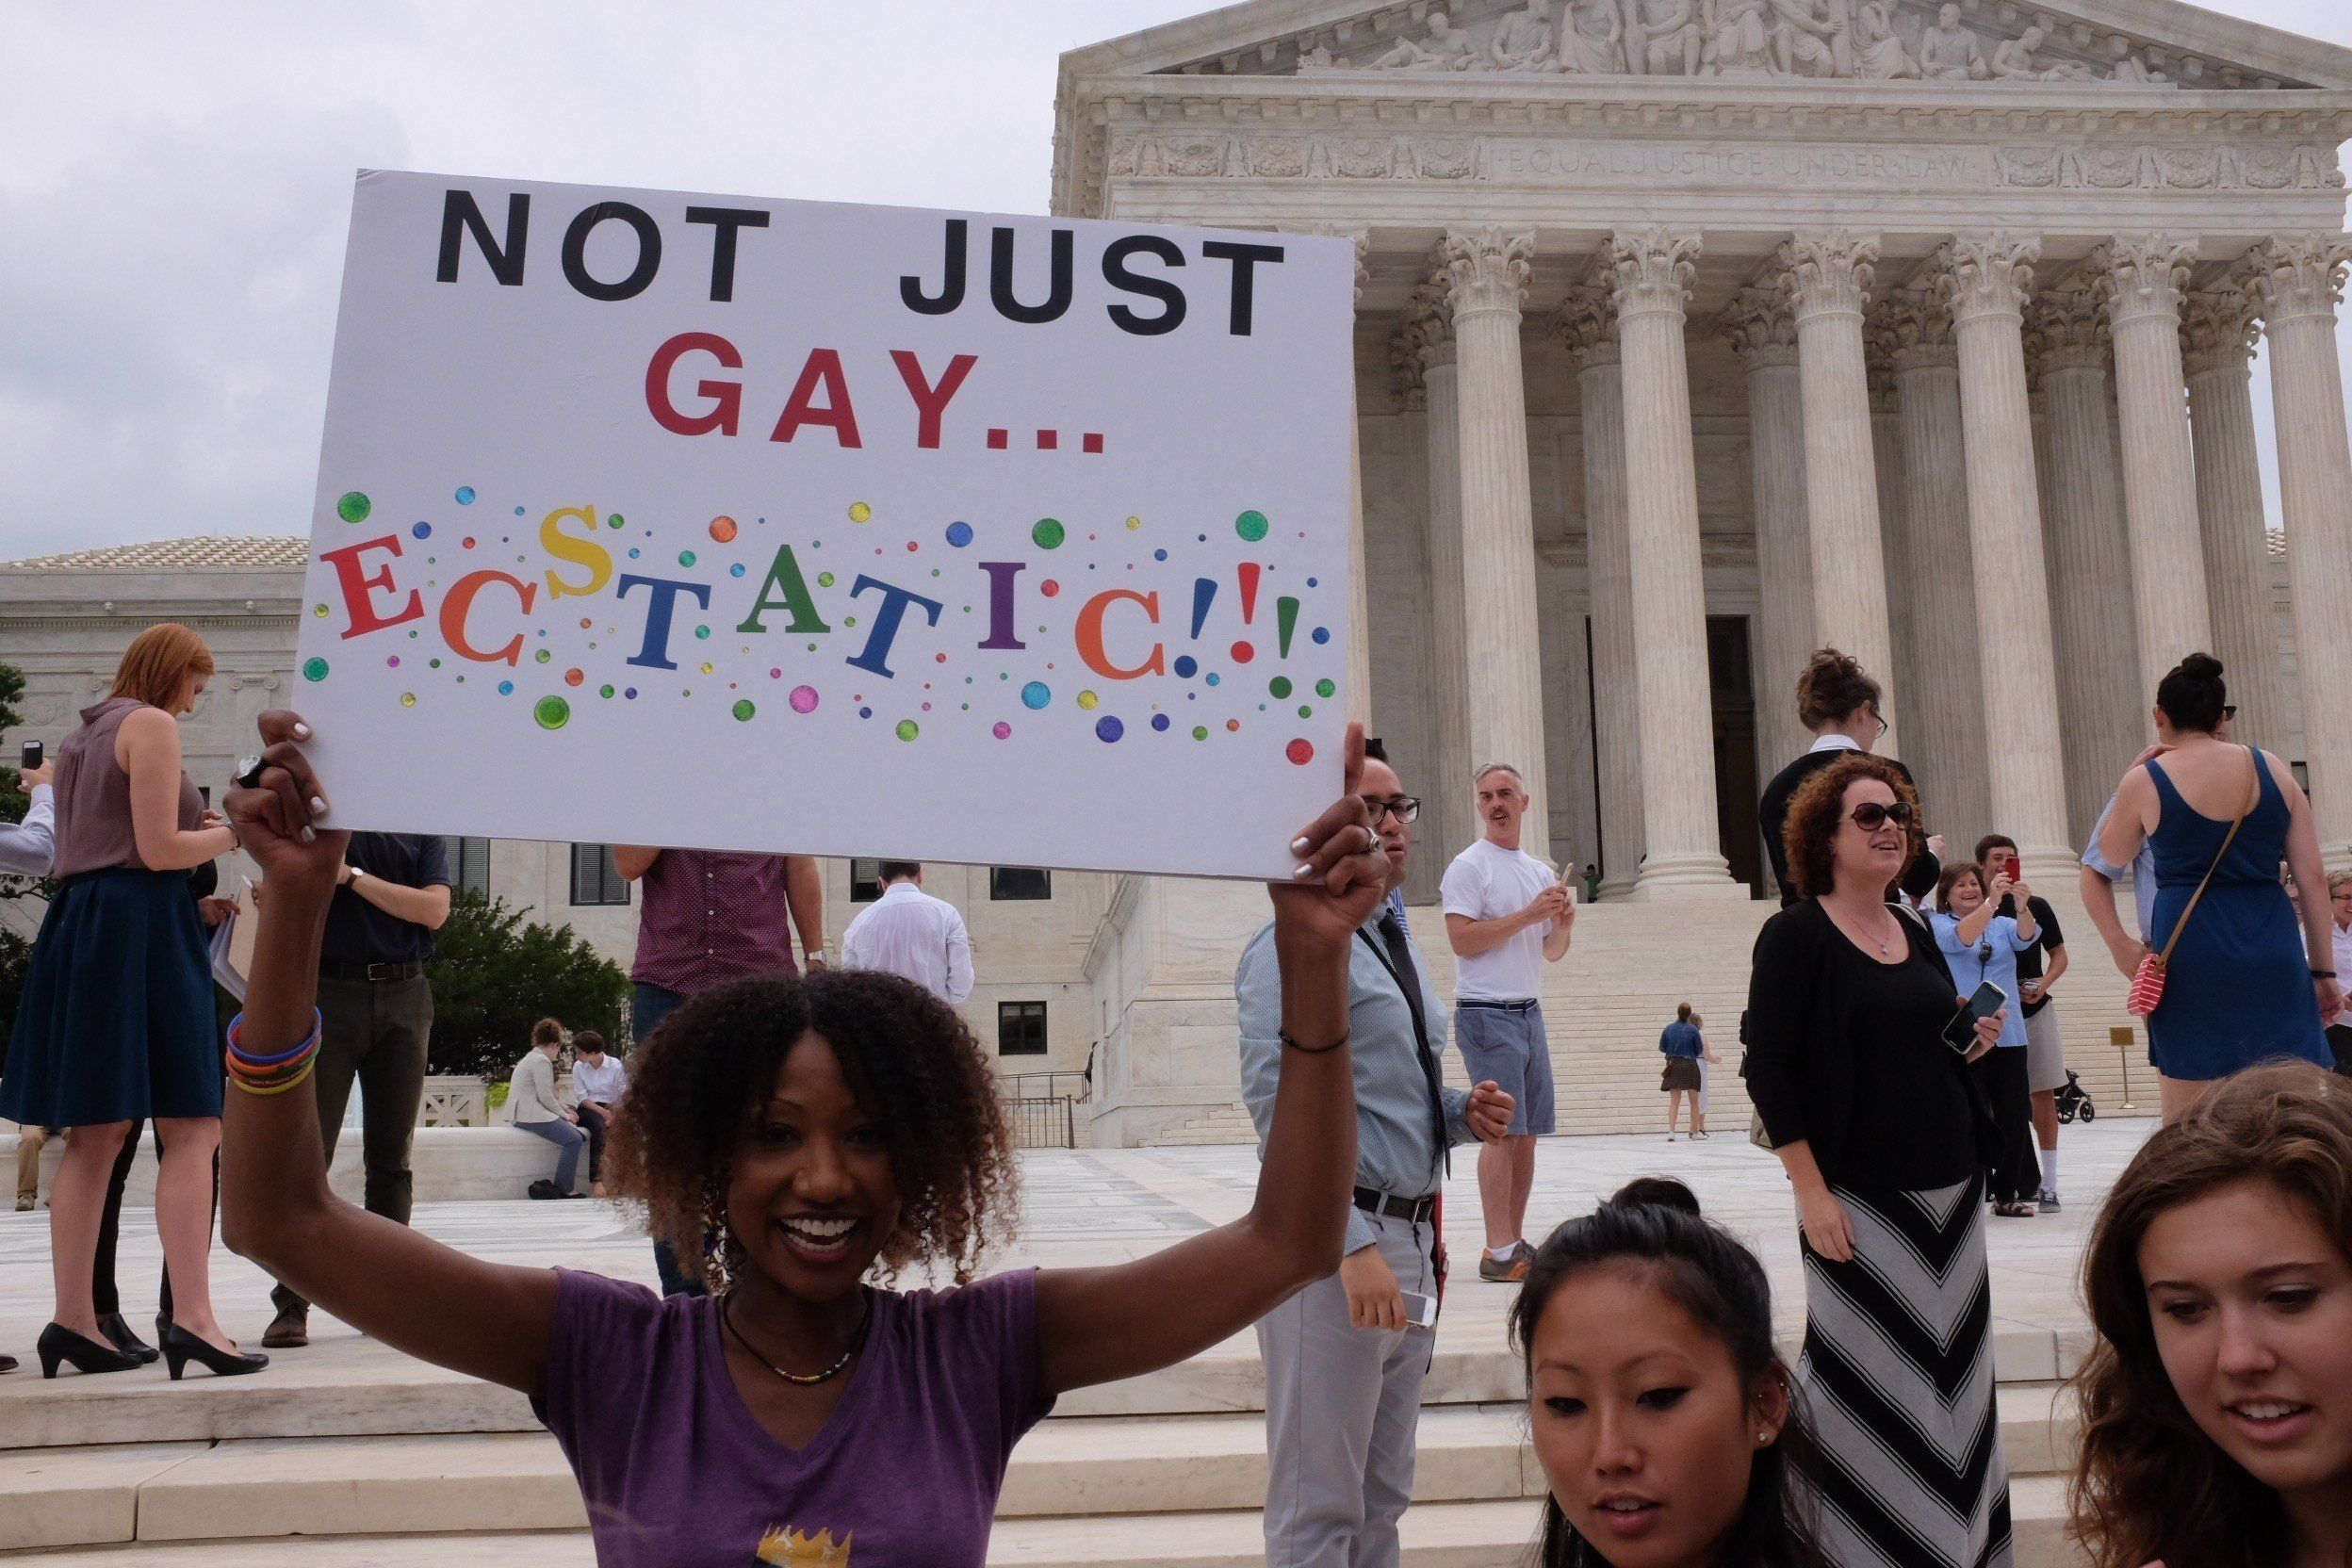 WASHINGTON, UNITED STATES - JUNE 26: Hundreds gather outside of the Supreme Court on Friday to celebrate the decision to legalize gay marriage in all 50 states, in Washington, on June 26, 2015. (Photo by Michael Hernandez/Anadolu Agency/Getty Images)